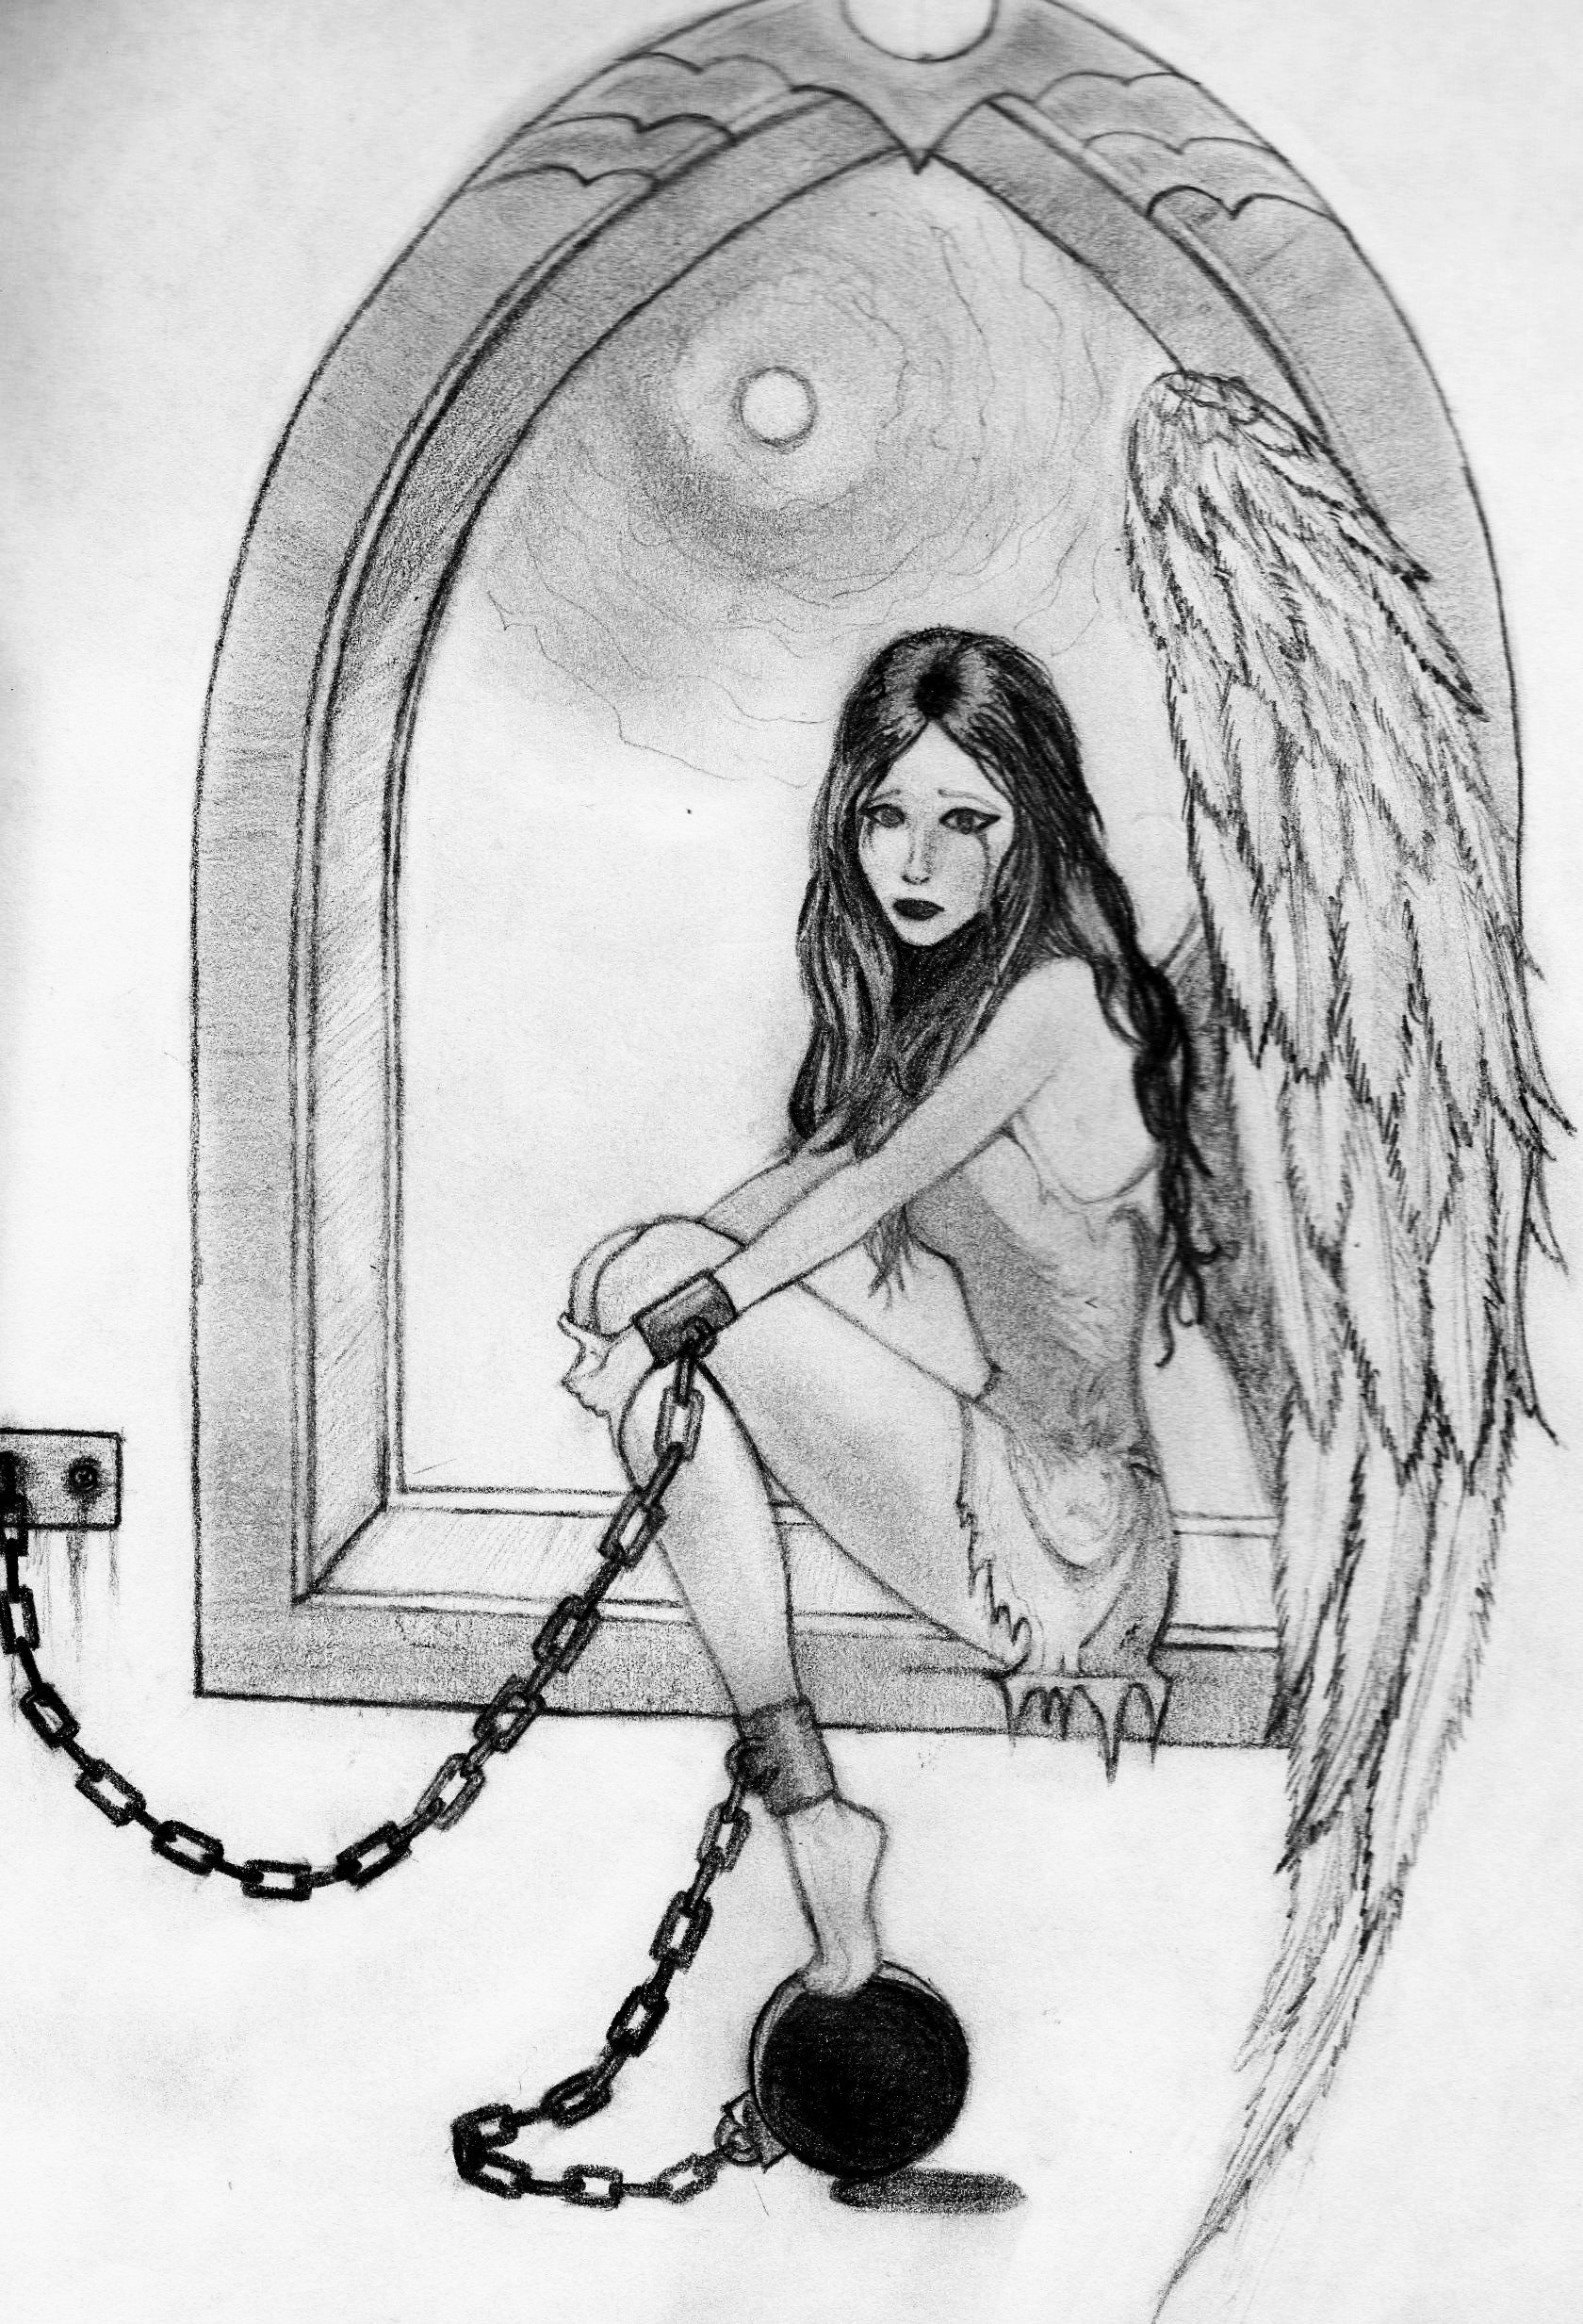 Captive angel pencil sketch by a fragile smile on deviantart